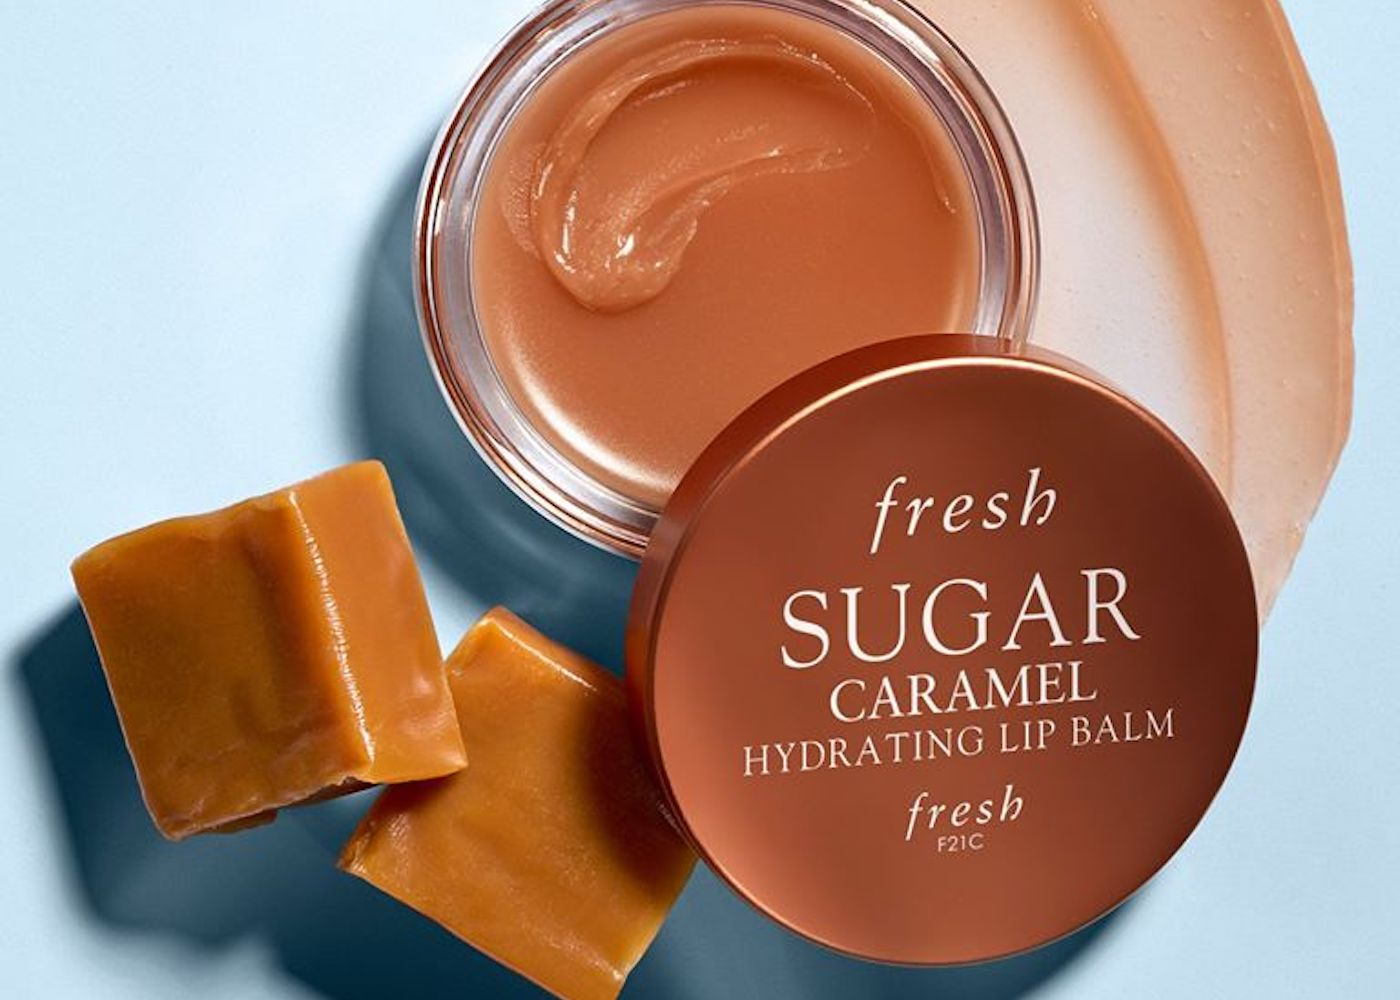 Beauty Reviews | Fresh Sugar Caramel Hydrating Lip Balm | Best beauty buys in 2019